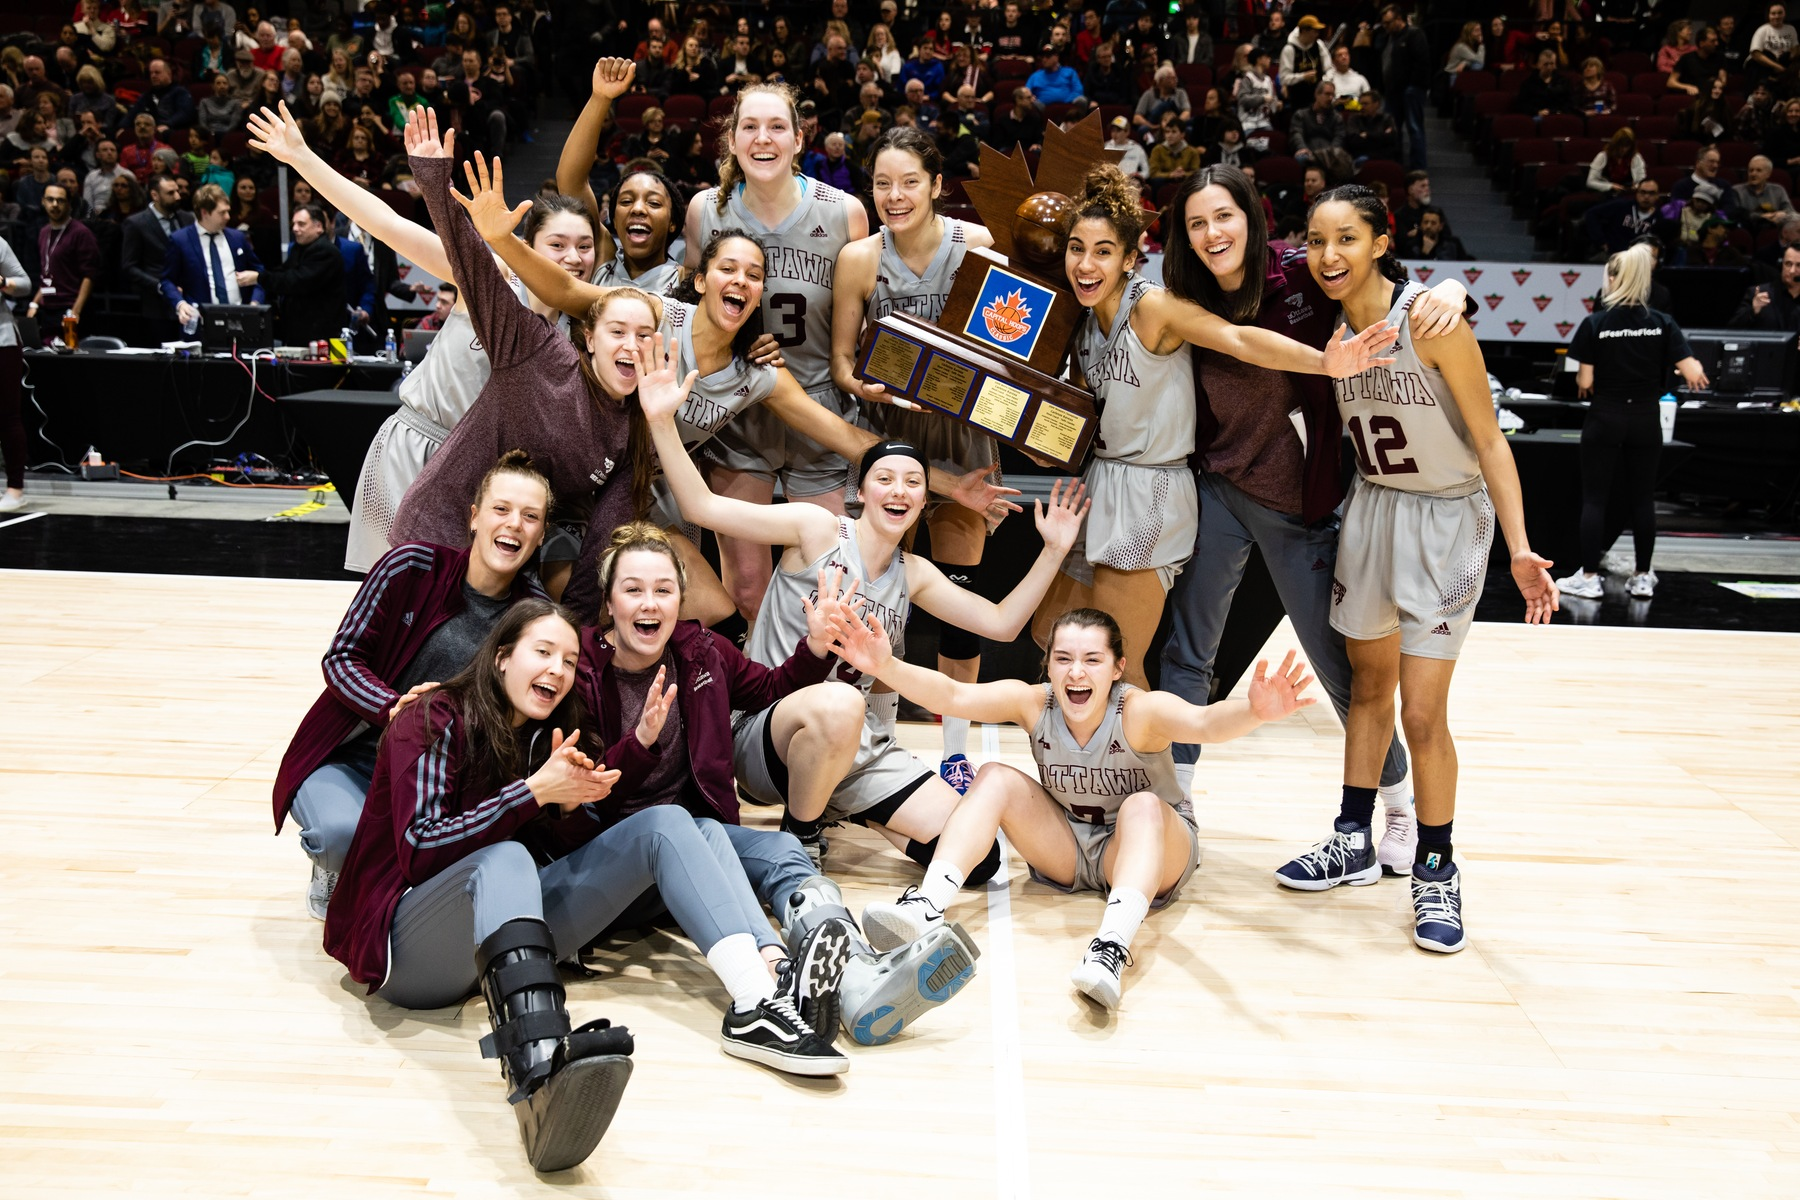 Gee-Gees women's team 2020 celebrates with trophy